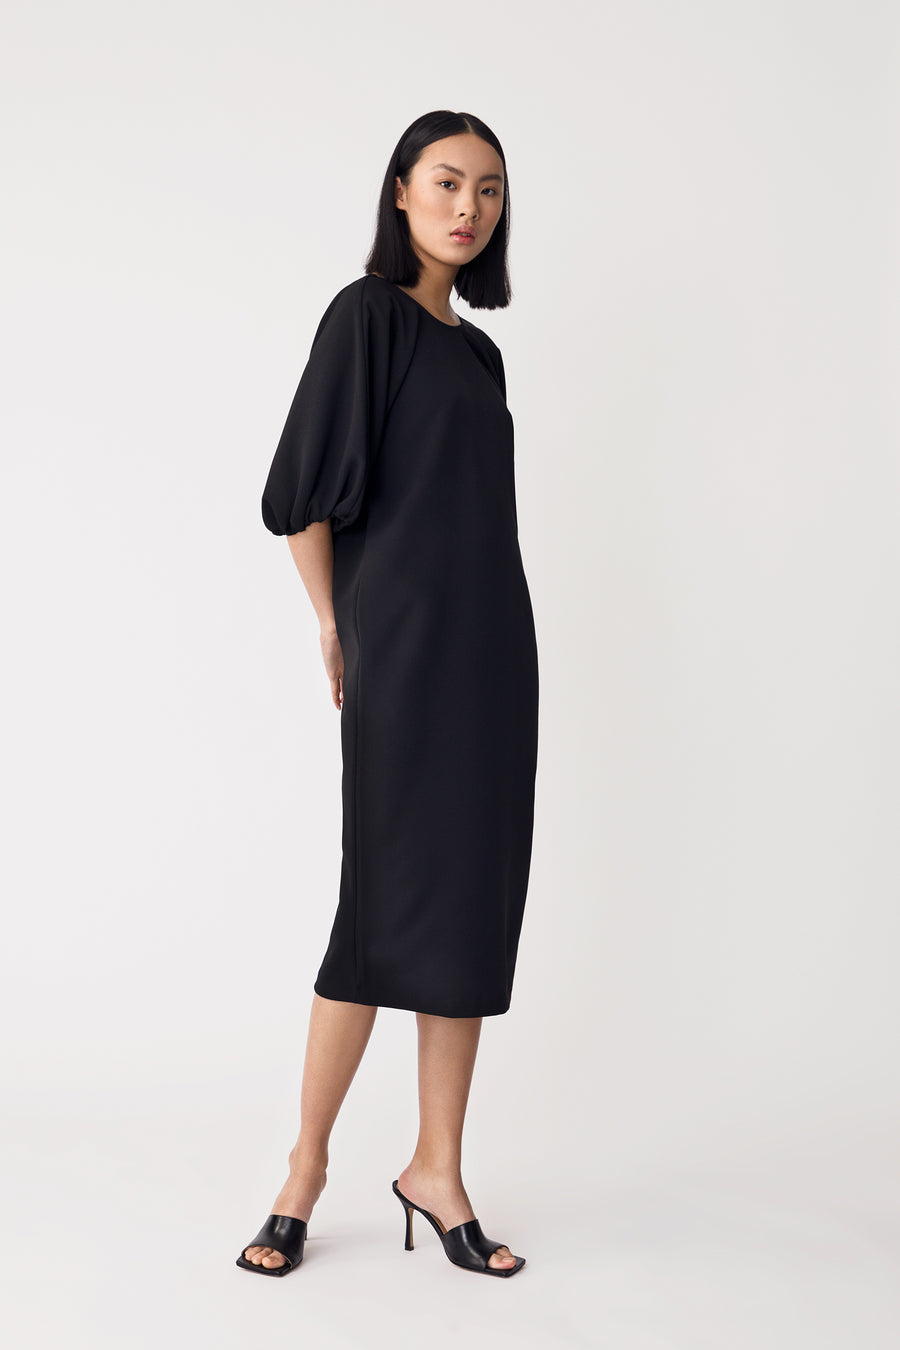 BRUNN DRESS - BLACK